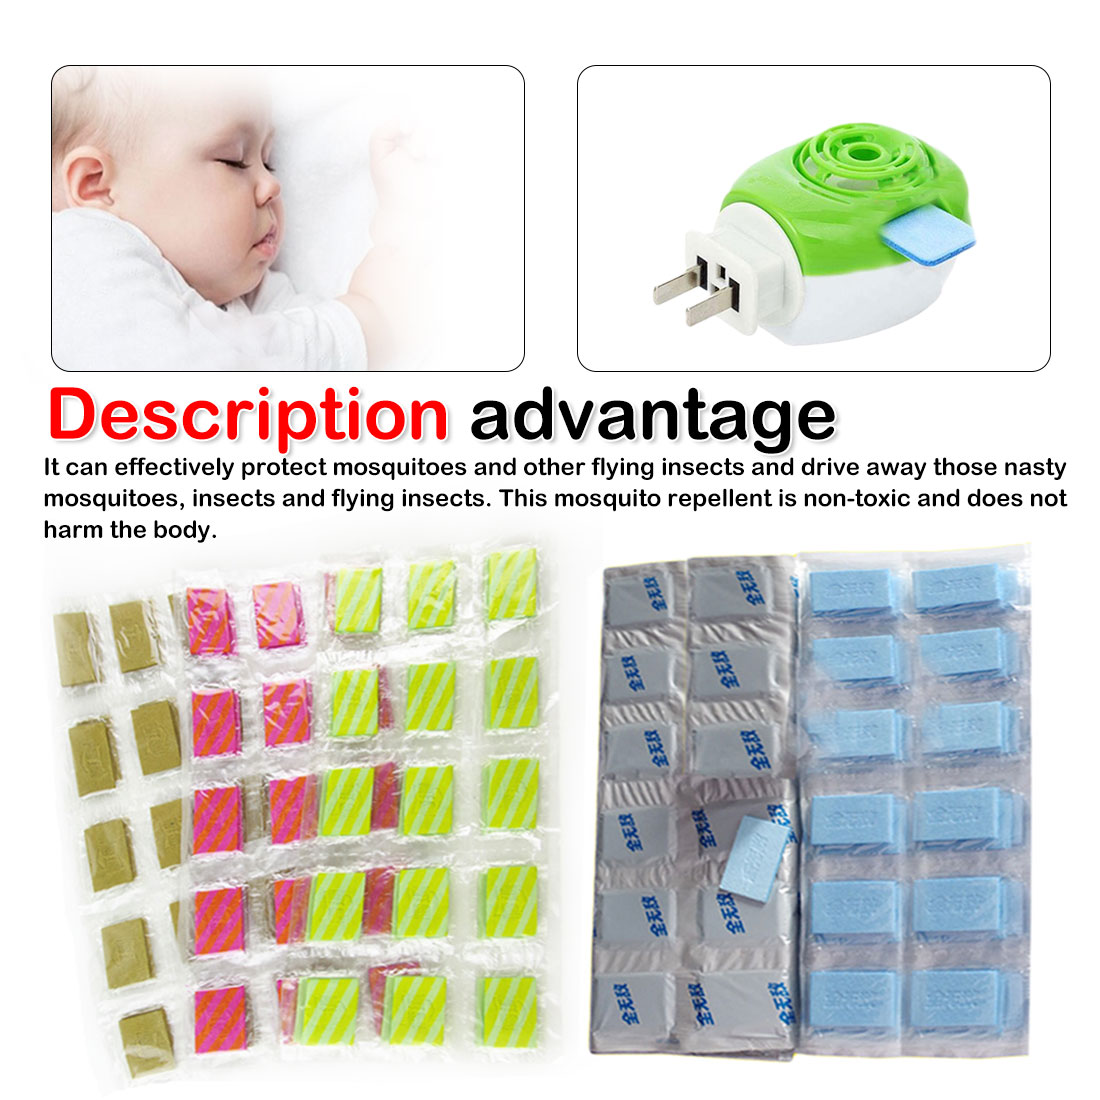 60Pcs/lot Mosquito Repellent Tablet Insect Anti Mosquito Pest Repeller No Toxic Pest Reject Insect Killer Pest Control